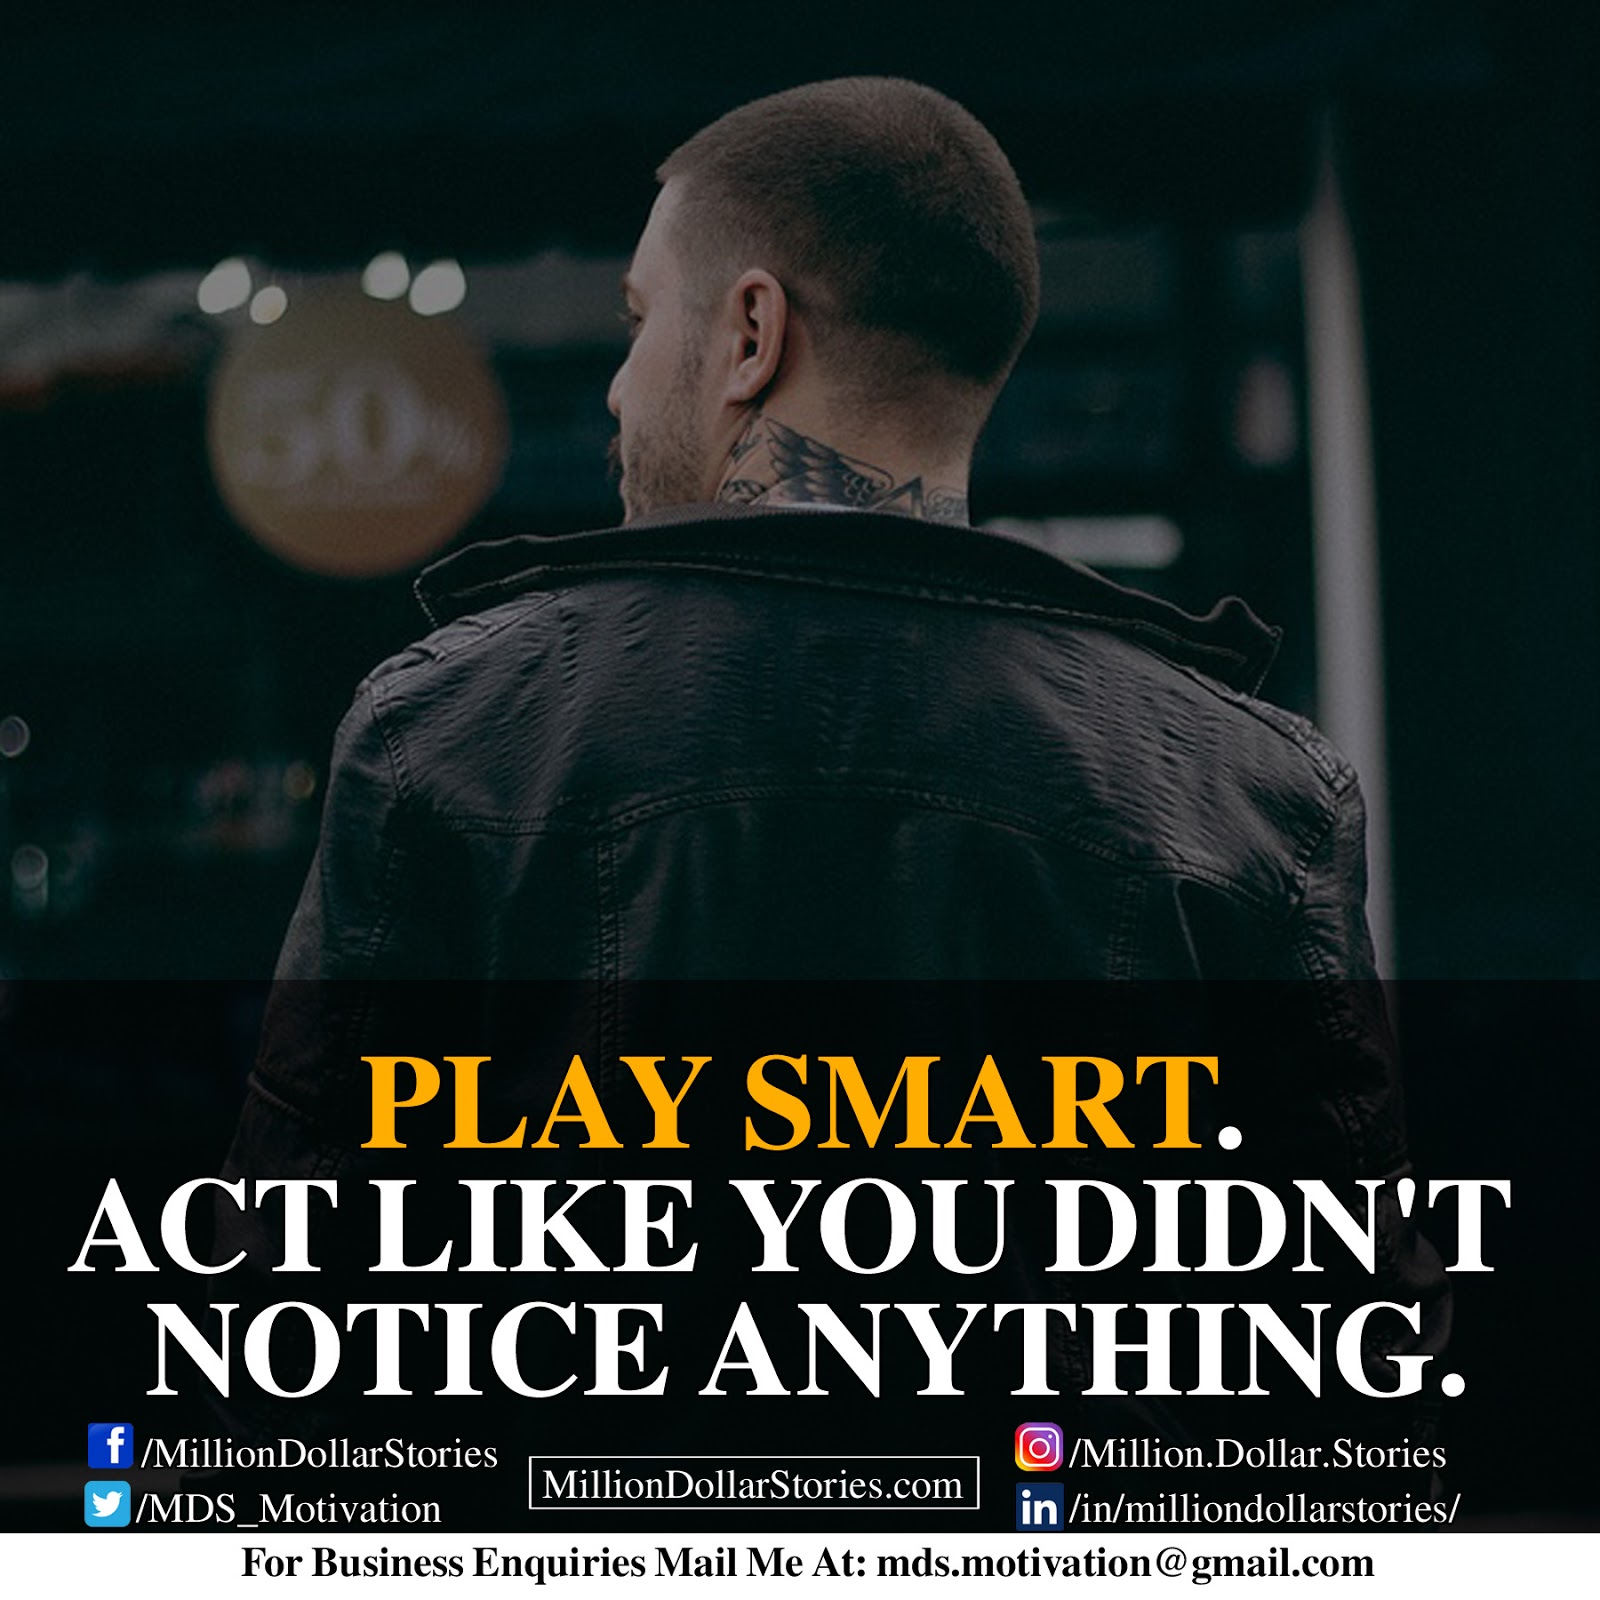 PLAY SMART. ACT LIKE YOU DIDN'T NOTICE ANYTHING.